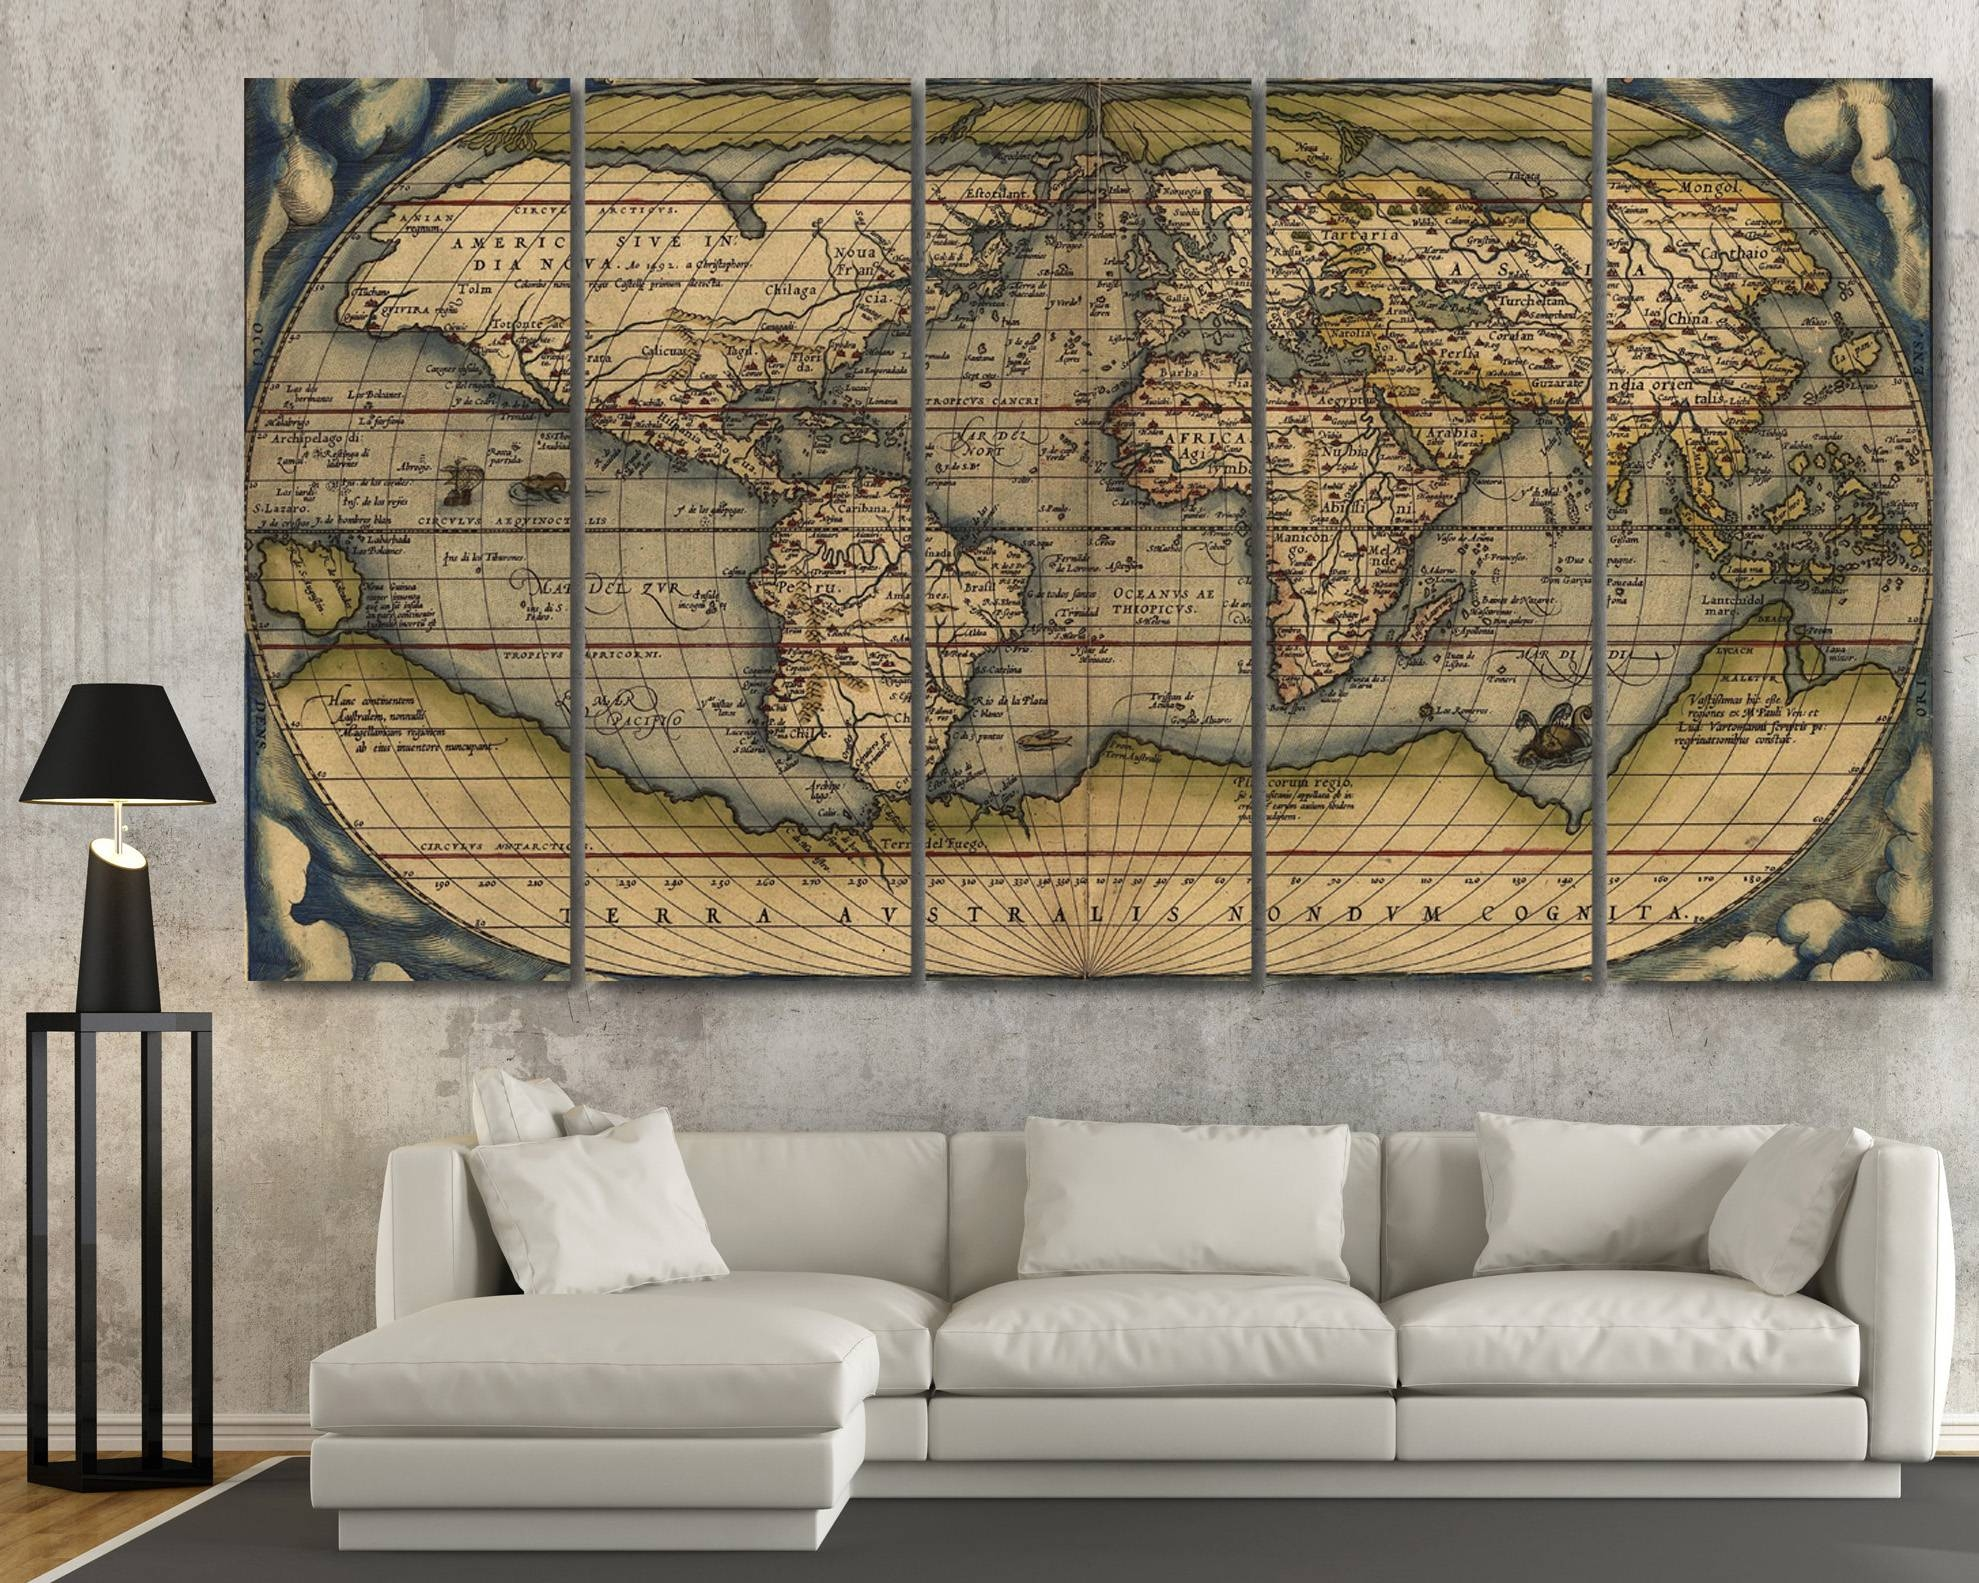 Large Vintage Wall Art Old World Map At Texelprintart Intended For Current Vintage Map Wall Art (View 11 of 20)